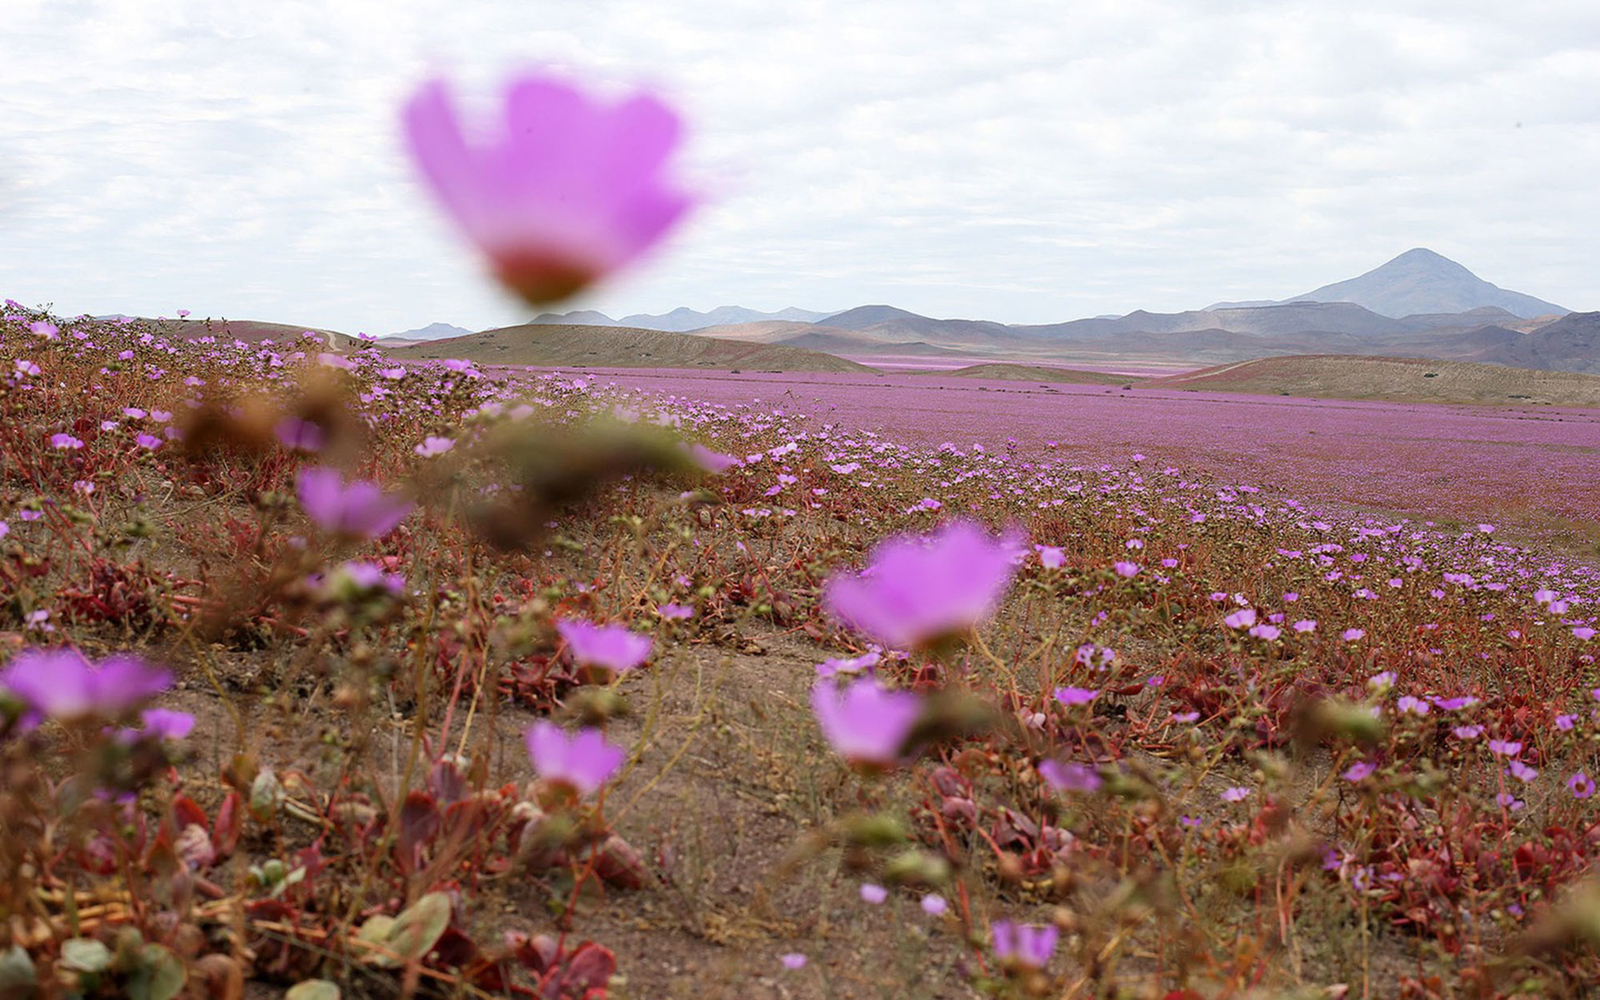 Atamacama Desert Bursts Into Bloom After Unusual Rainfall   Travel       Chile atacama desert flowers